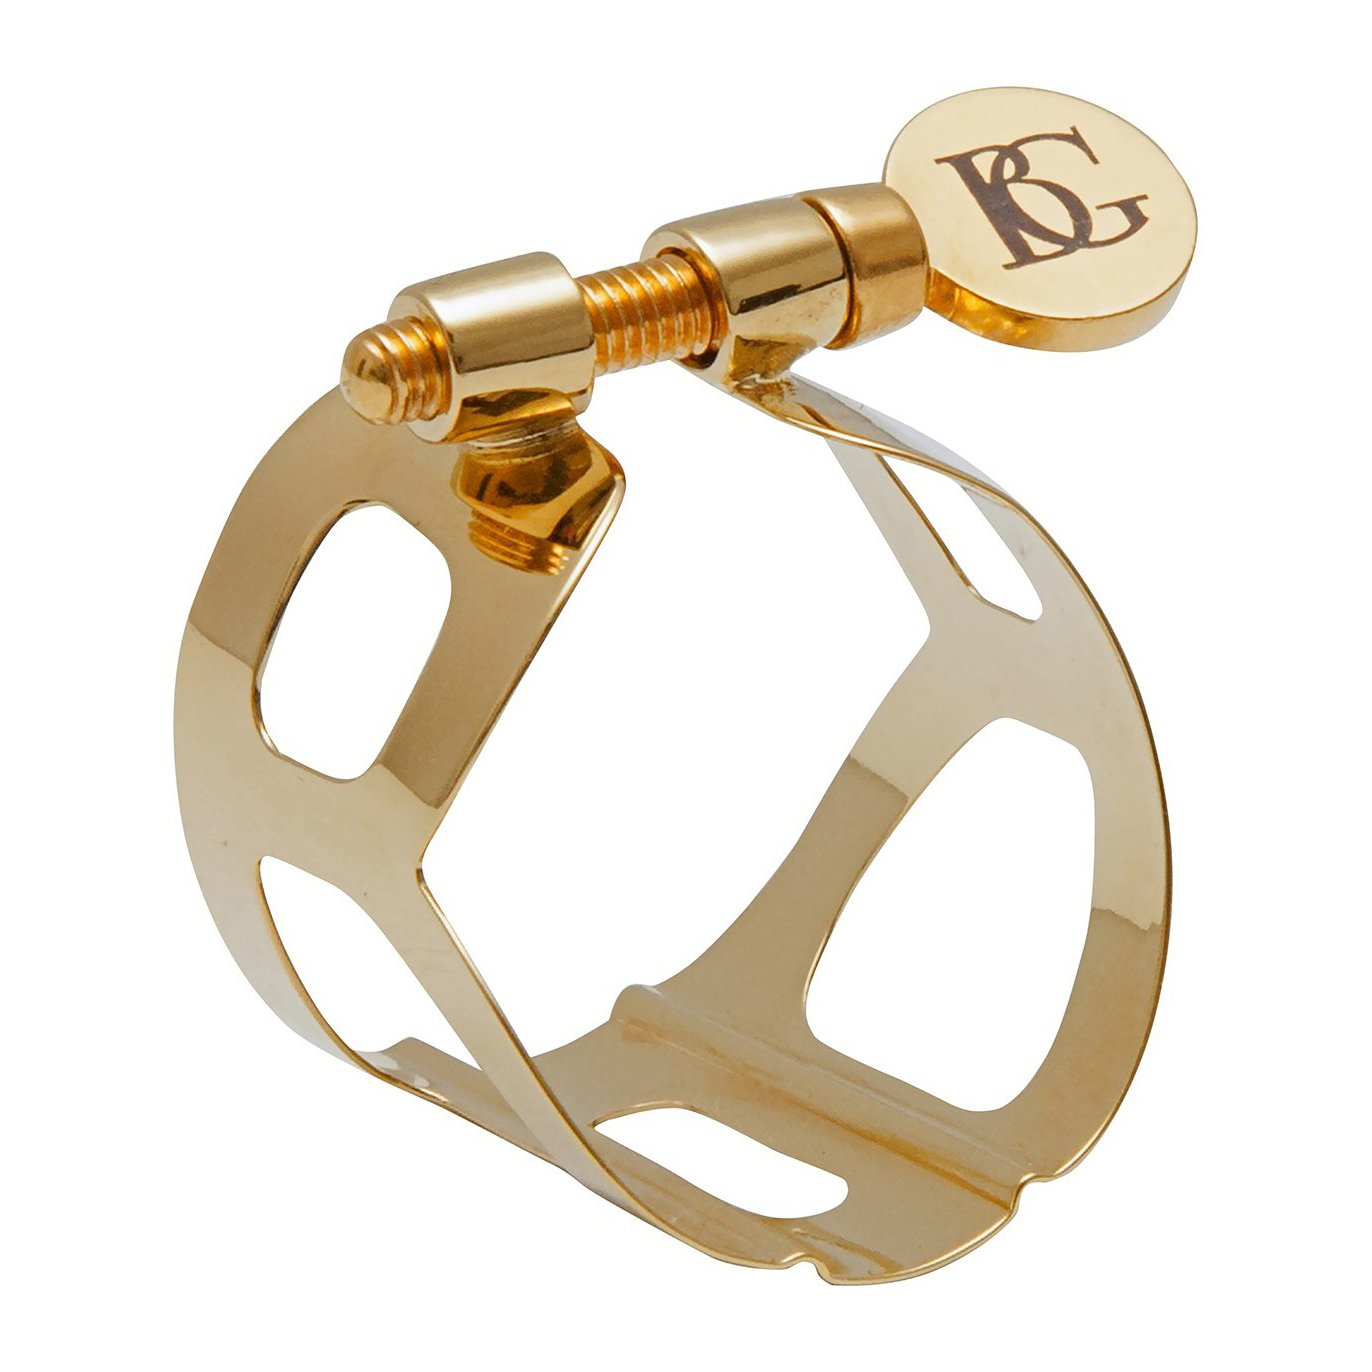 BG France - Tradition Ligatures for Bb/A Clarinet-Ligature-BG France-Gold Plated-Music Elements